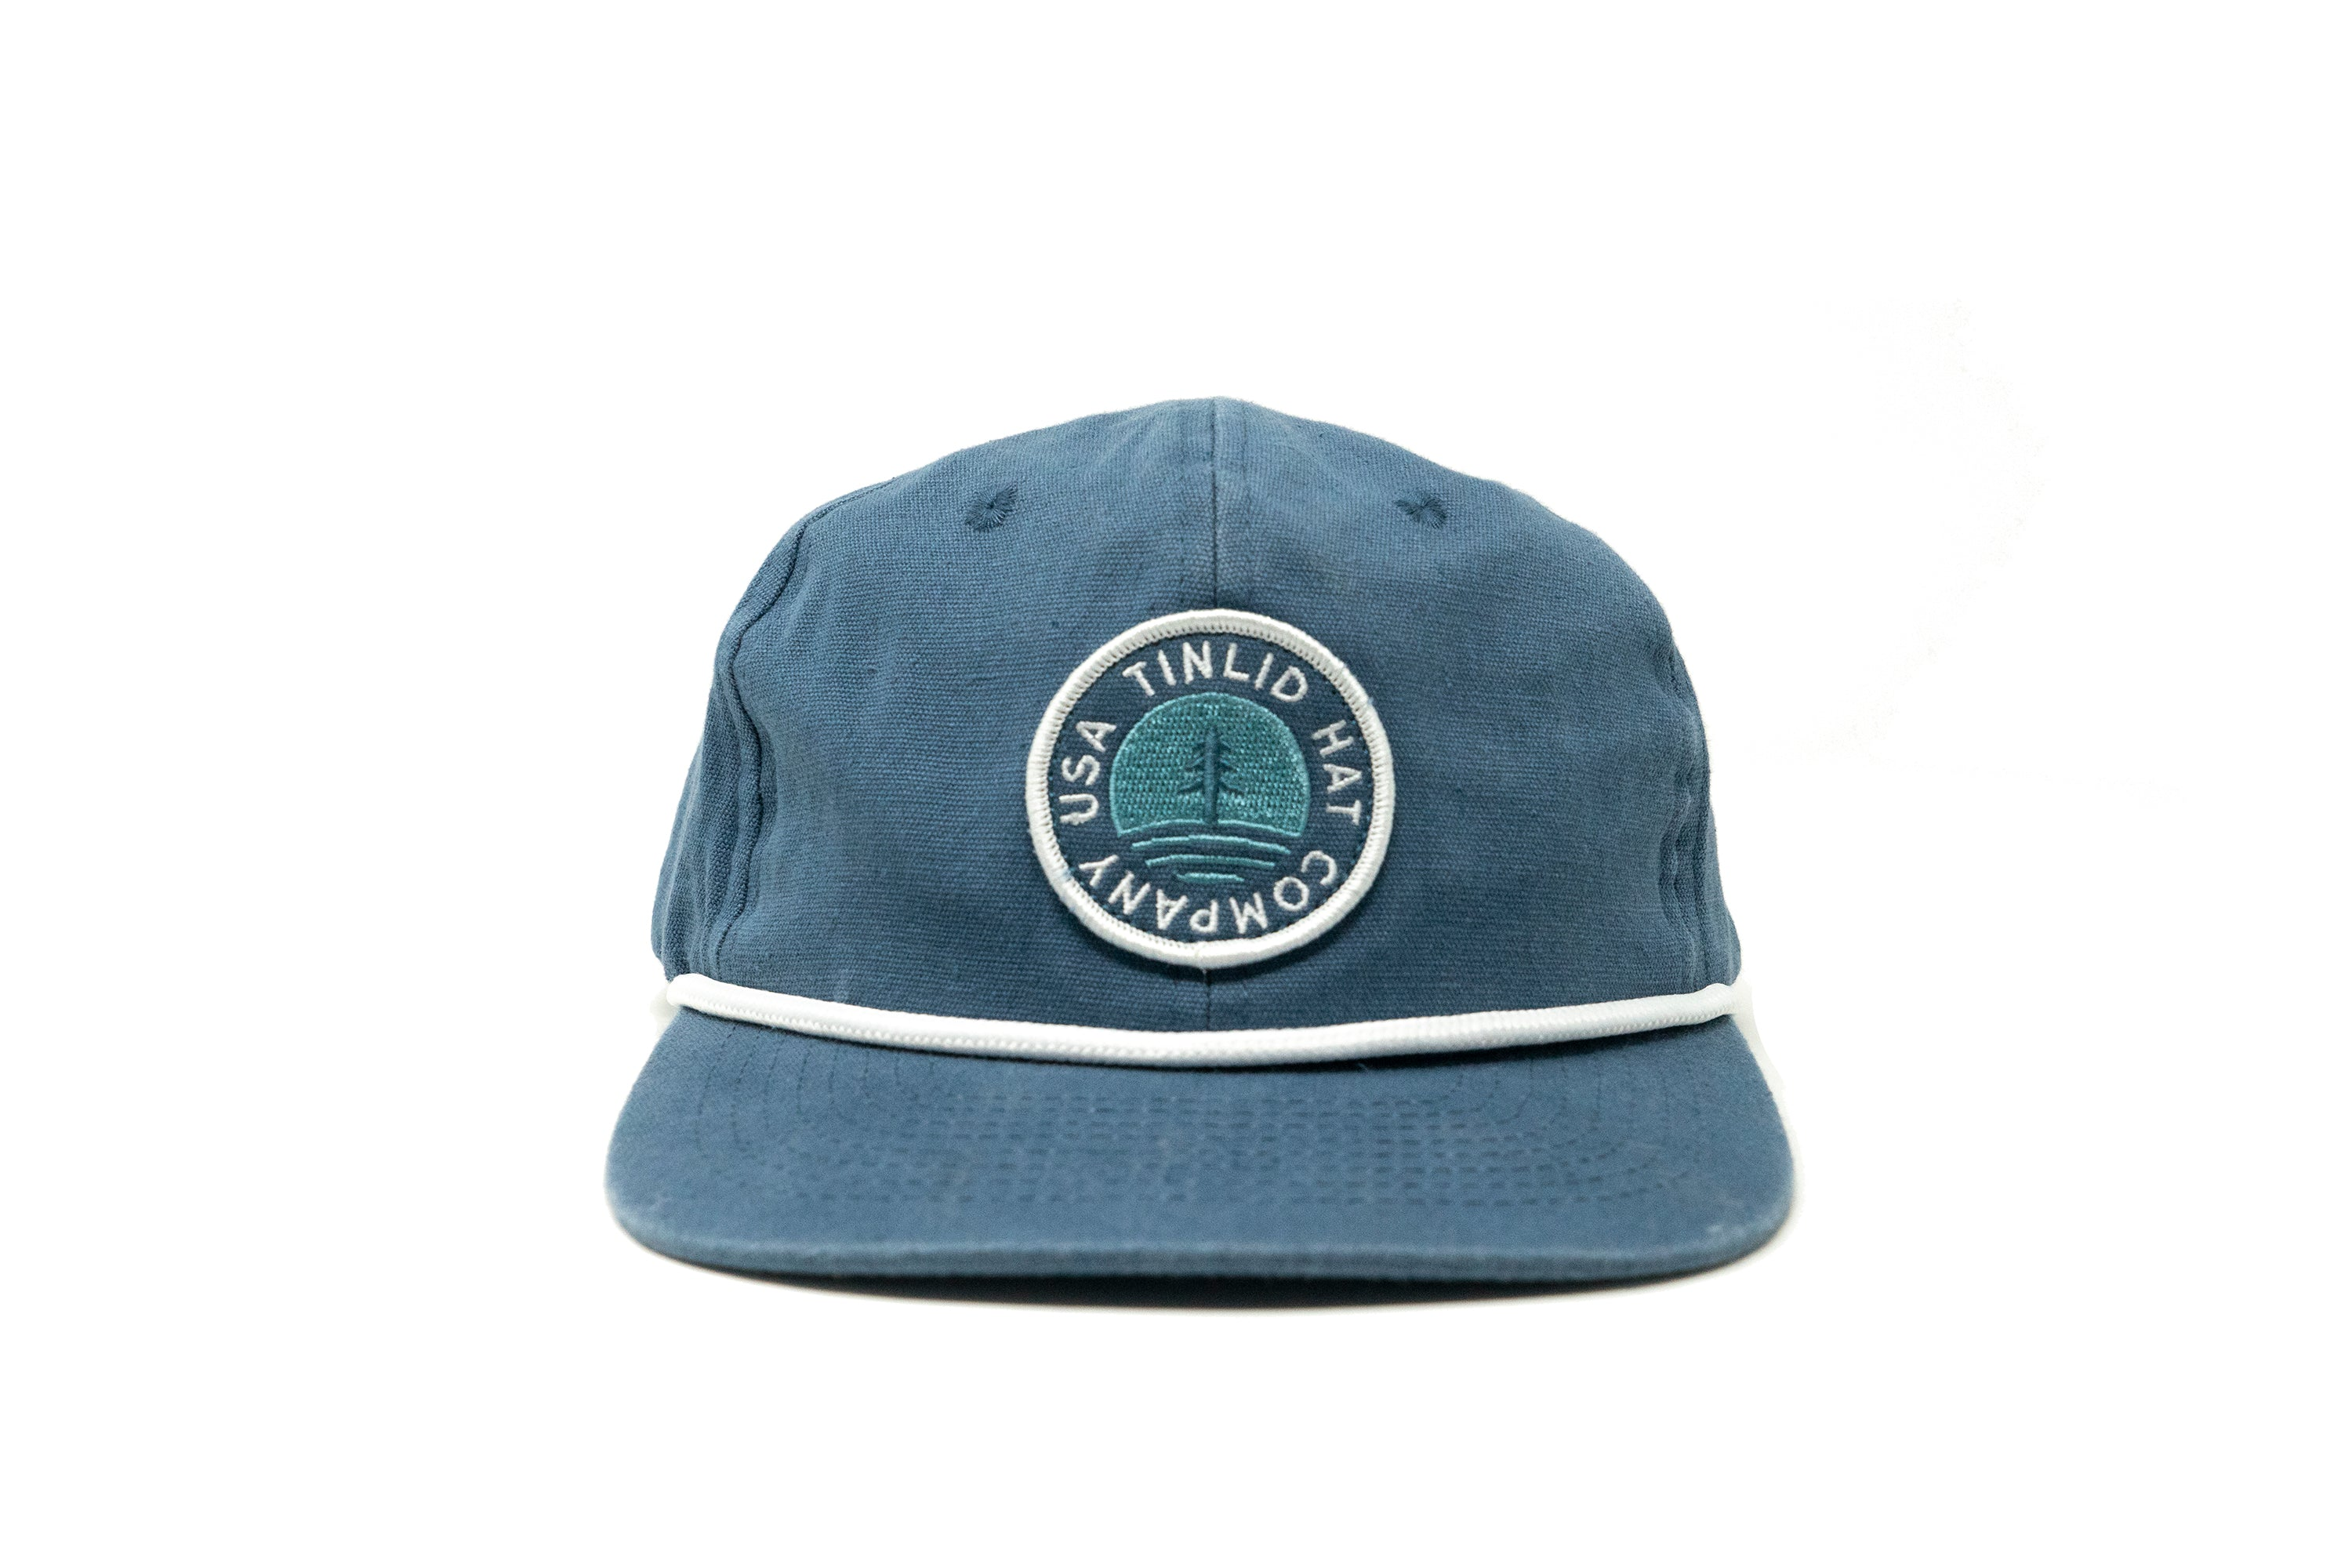 The Blue Johnson Hat